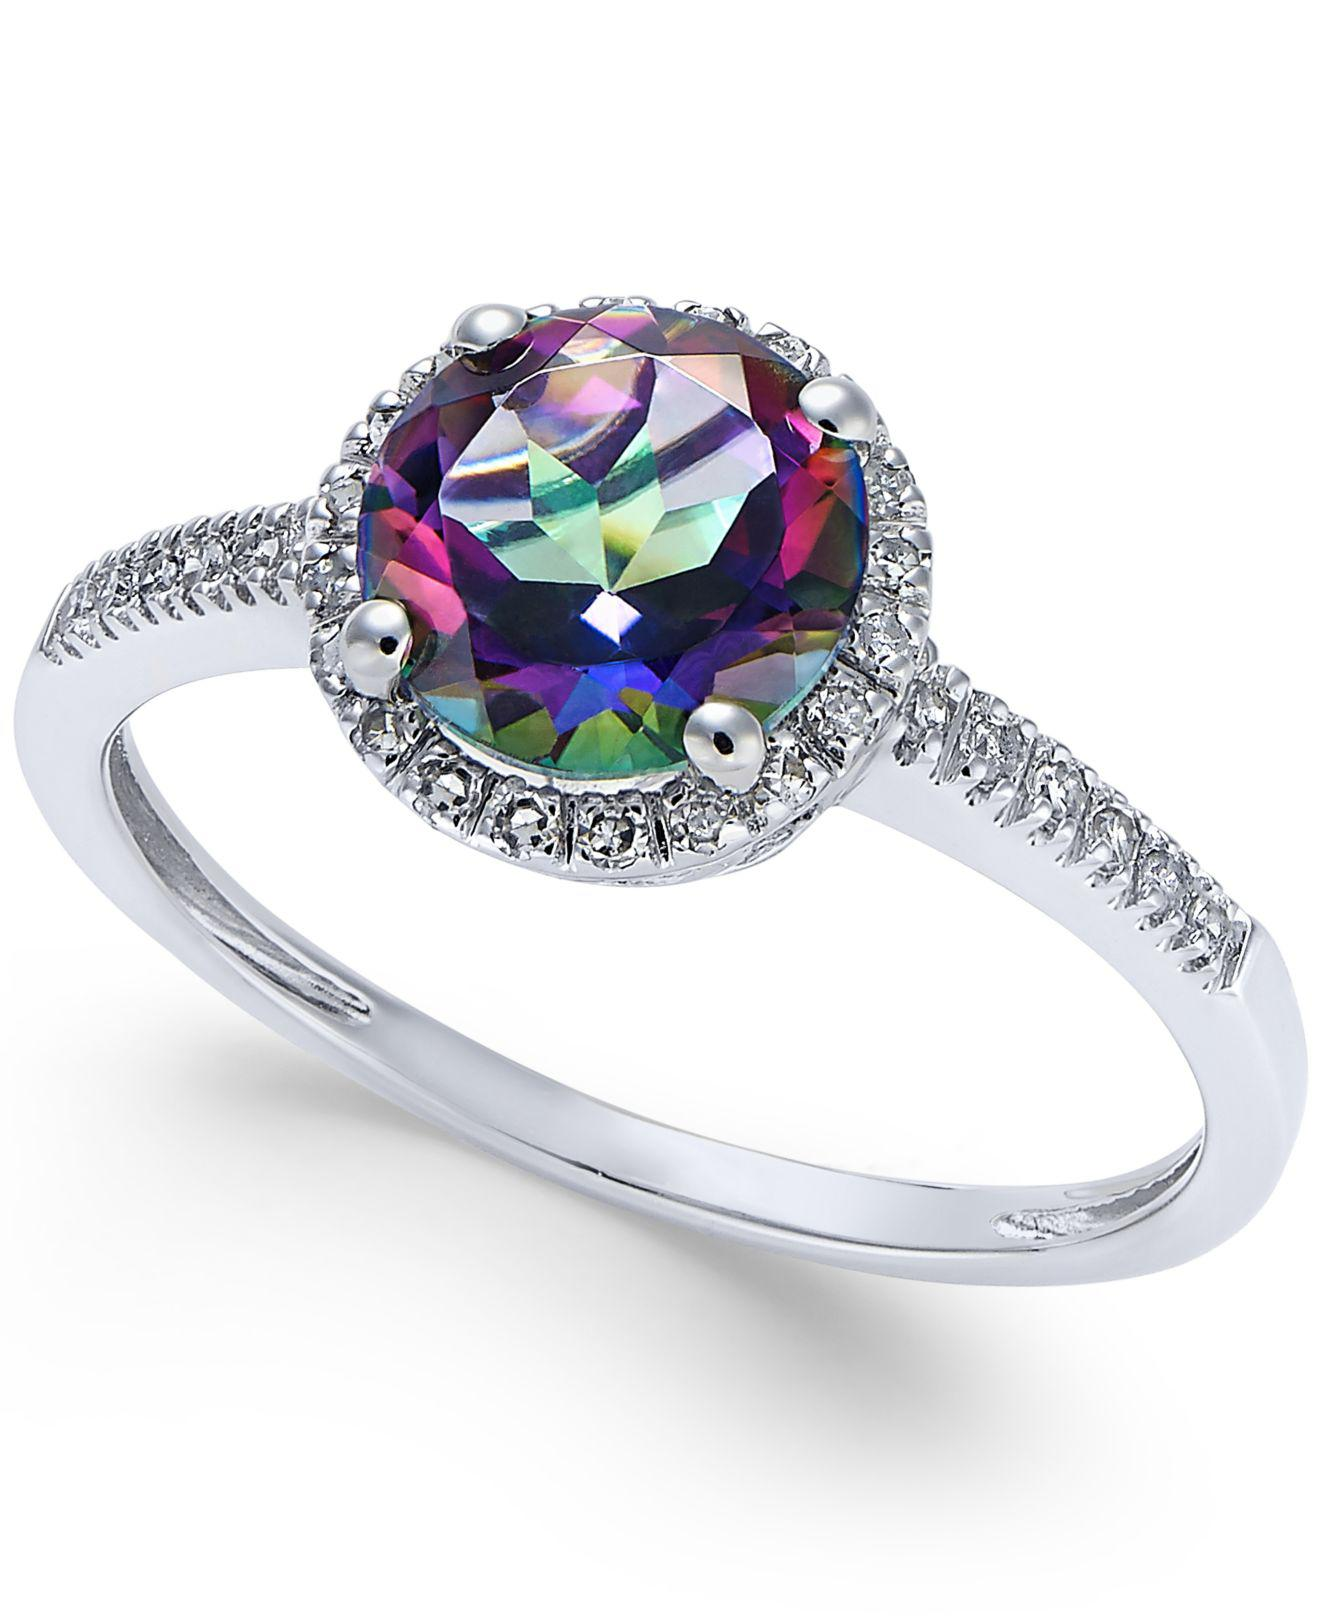 featuring bridal faberge fabergeveraringgemfieldsemerald subsampling solyanka crop new code colour false gemstones the ring vera mystic engagement rings scale upscale article fire vibrant